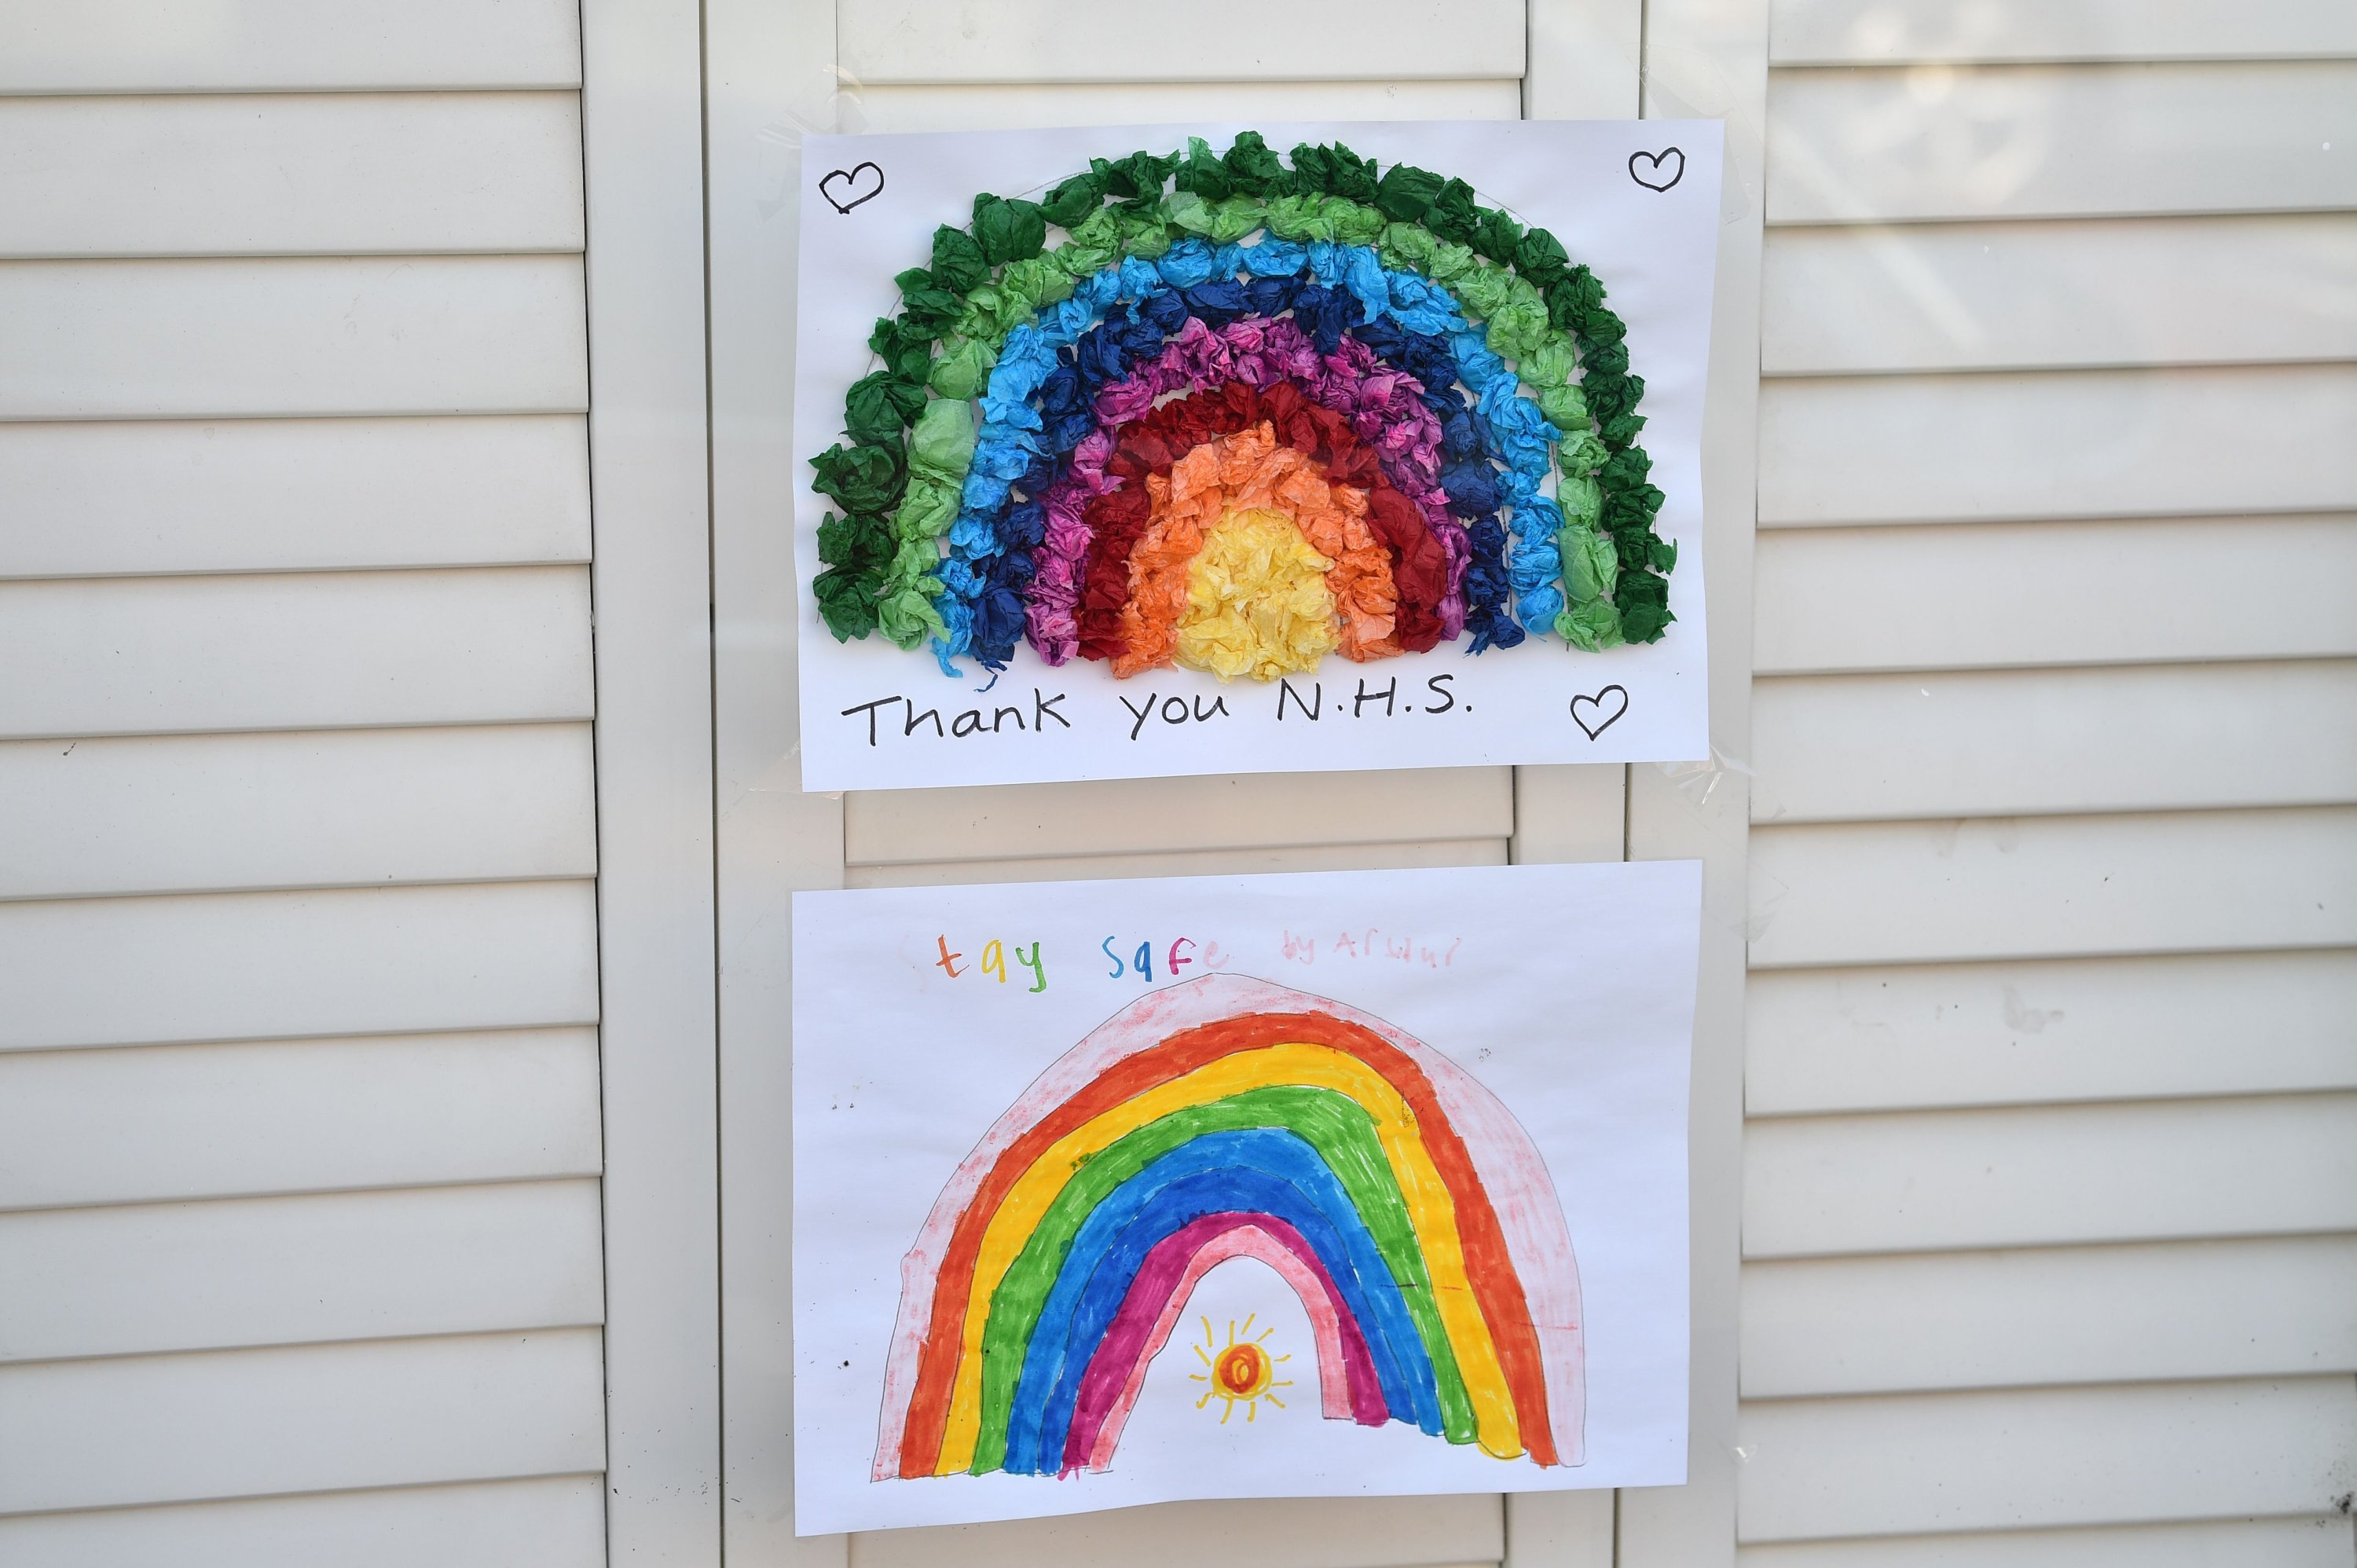 Rainbow pictures, offering messages of hope to the public and support for the National Health Service (NHS) are seen in the window of a house in Arundel, southern England, April 10, 2020. (AFP Photo)